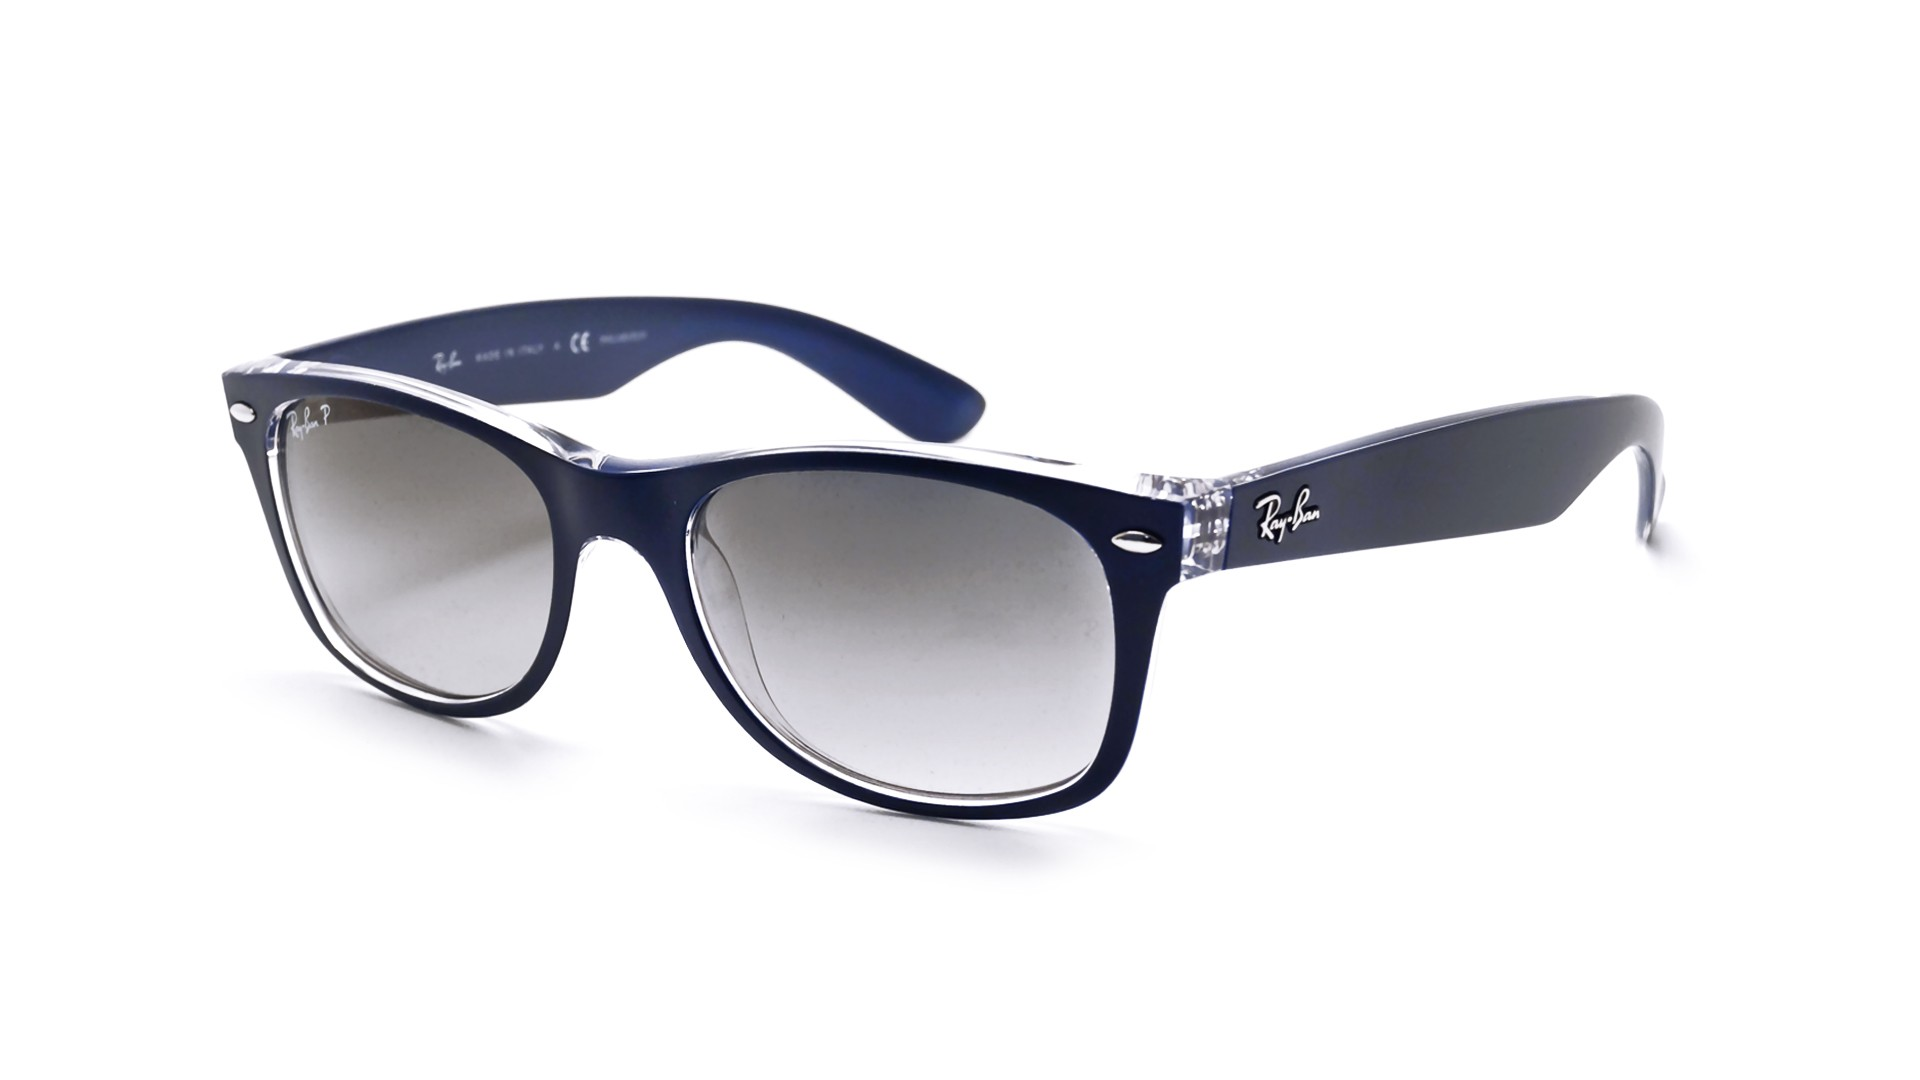 Sunglasses Ray-Ban New Wayfarer Blue RB2132 6053 M3 55-18 Large Polarized  Gradient 64c5878a662c